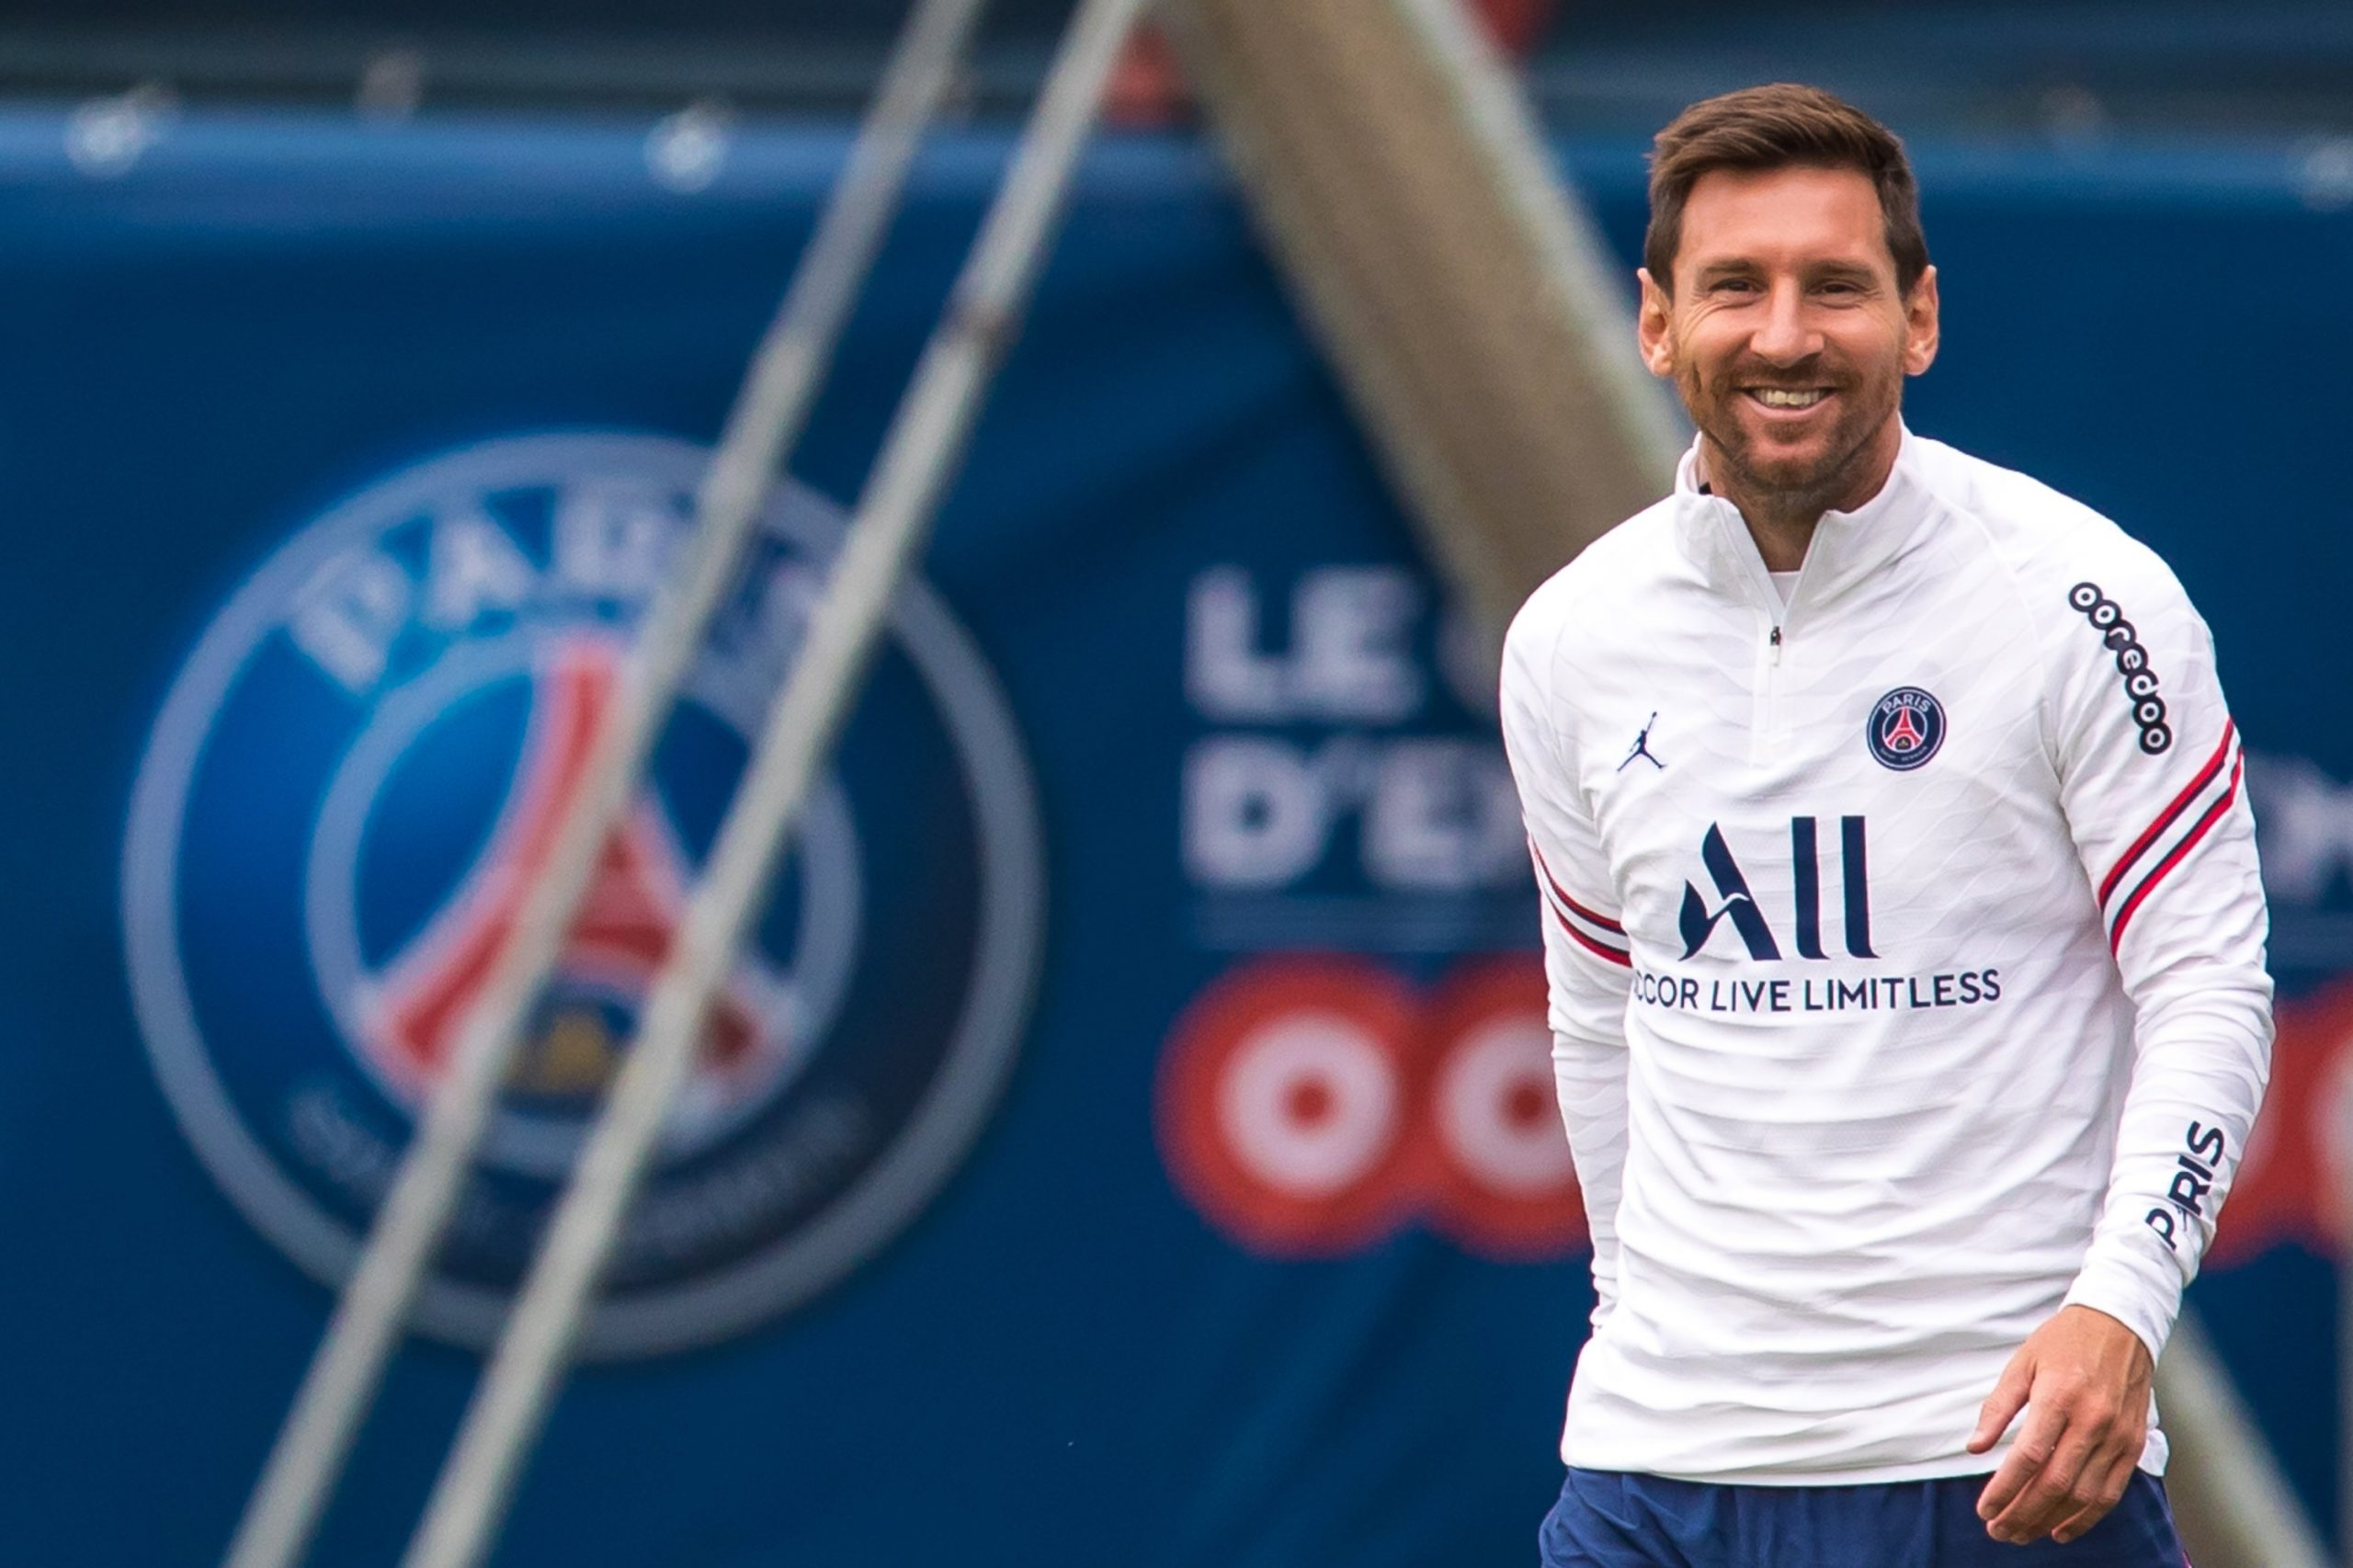 Messi, Neymar, Mbappé to train in Qatar along with PSG team in January